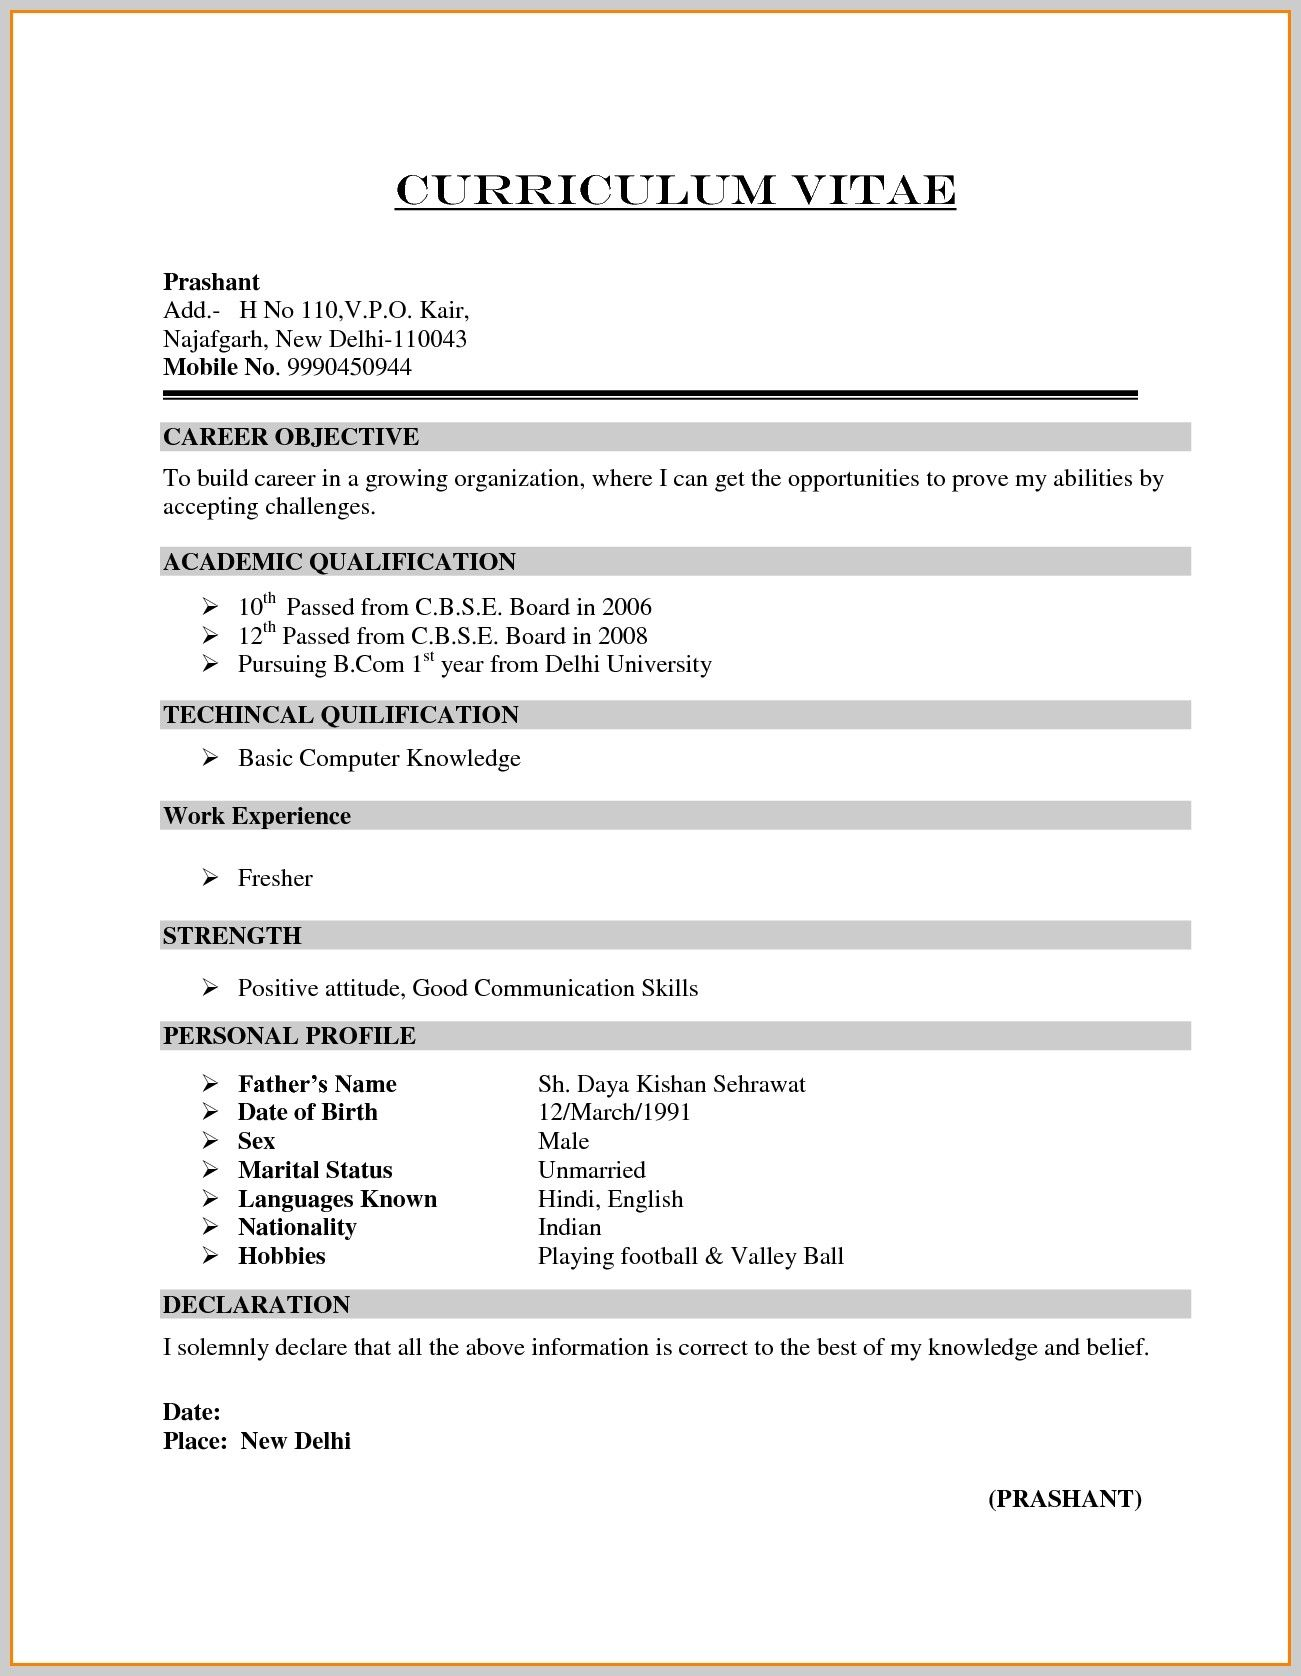 bcom student resume format pdf best examples for freshers functional example apartment Resume Resume Format For Freshers Pdf